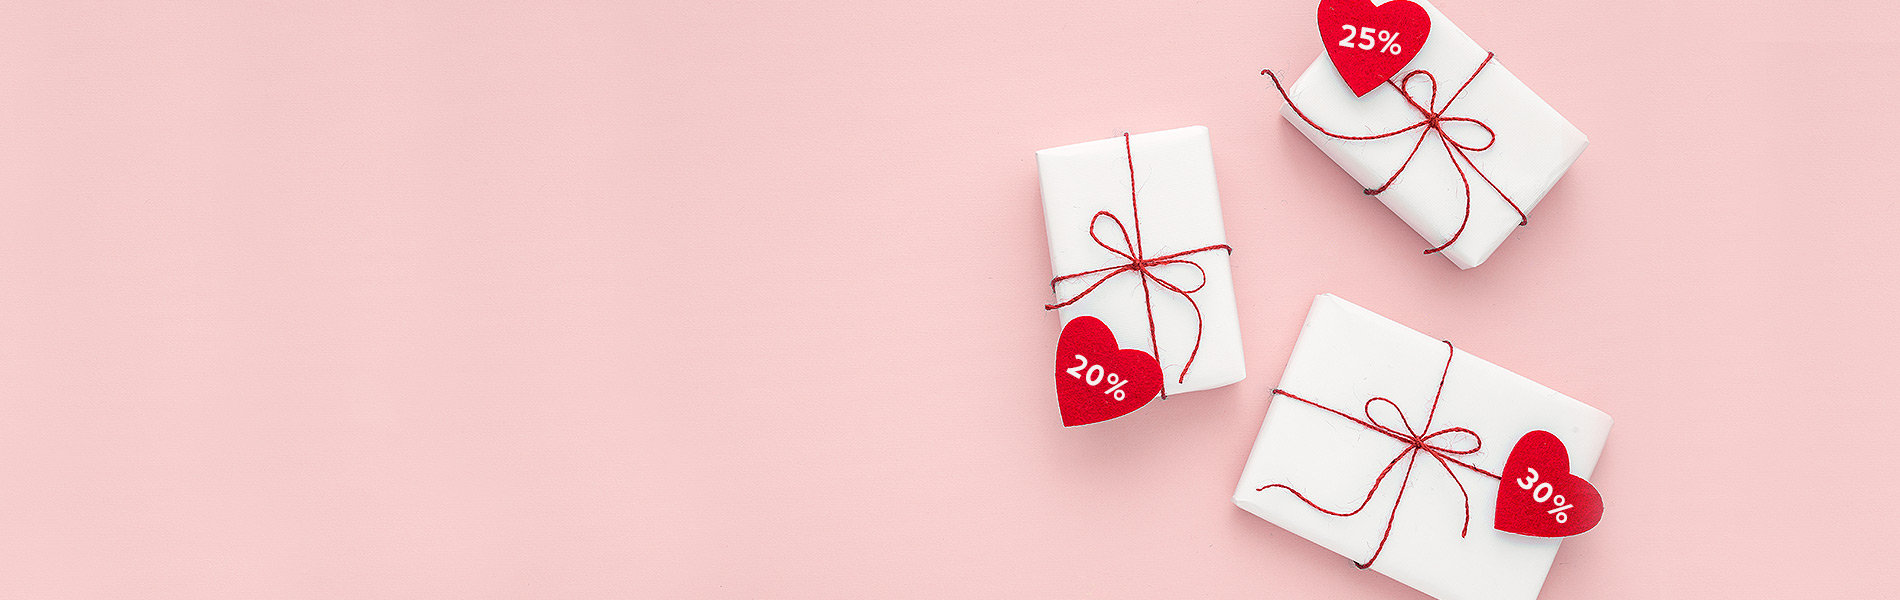 Upto 35 percent off products category curation banner